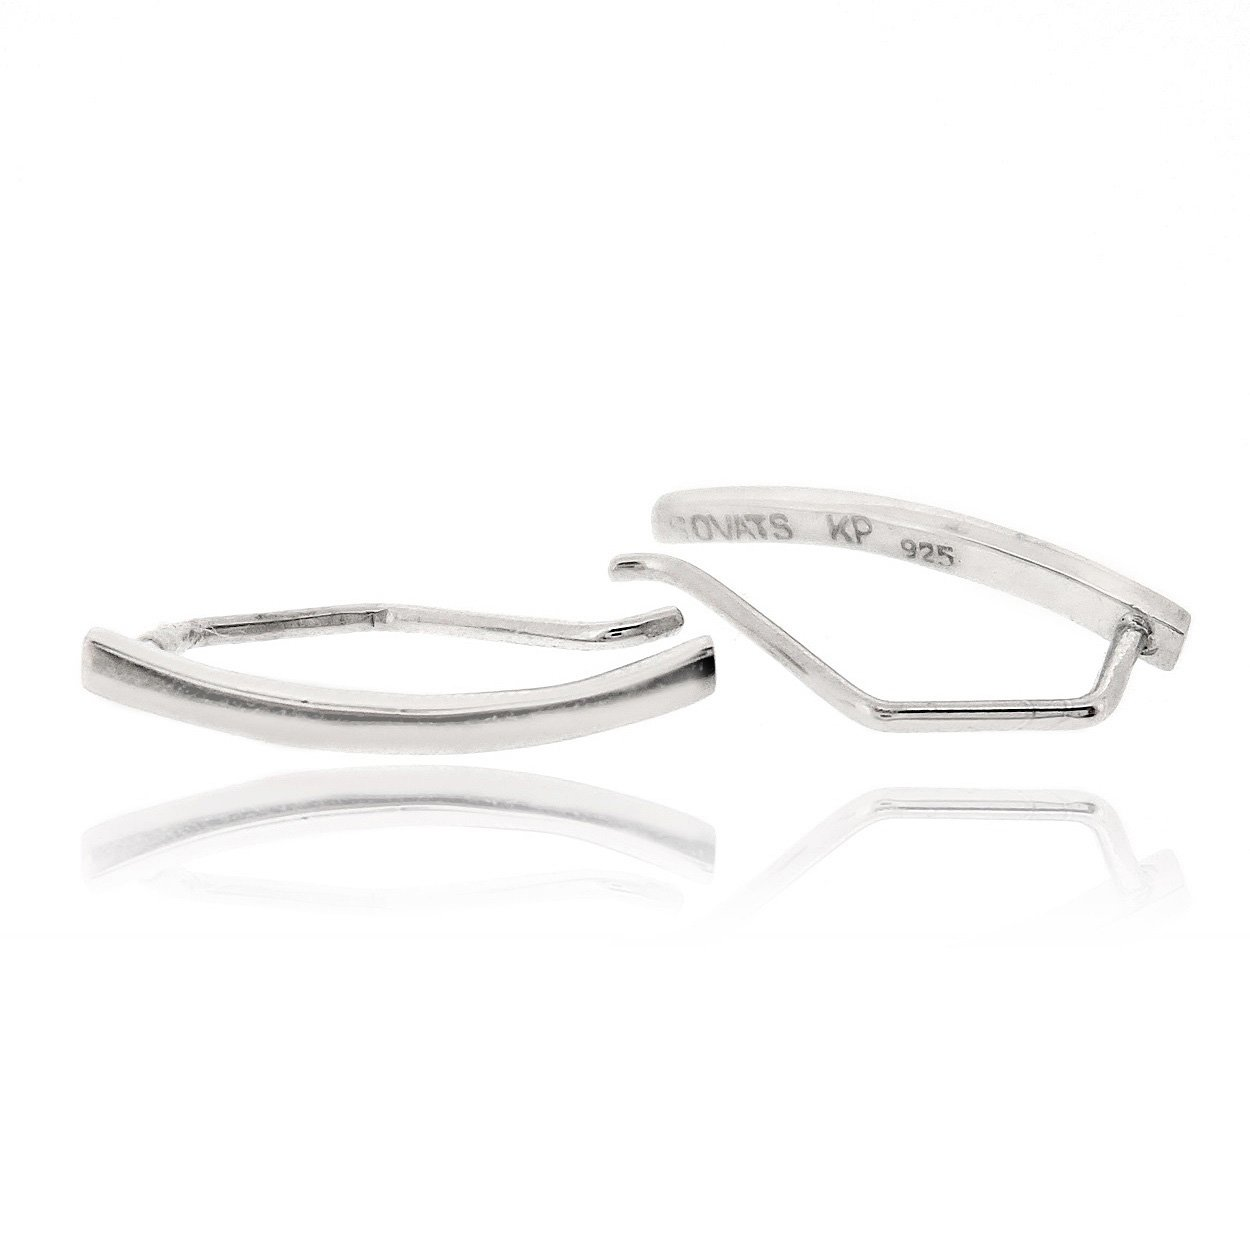 Sovats Bar Curved Earring For Women 925 Sterling Silver Rhodium Plated - Simple, Stylish Climber Earring&Trendy Nickel Free Earring East India 599_ee0288._us